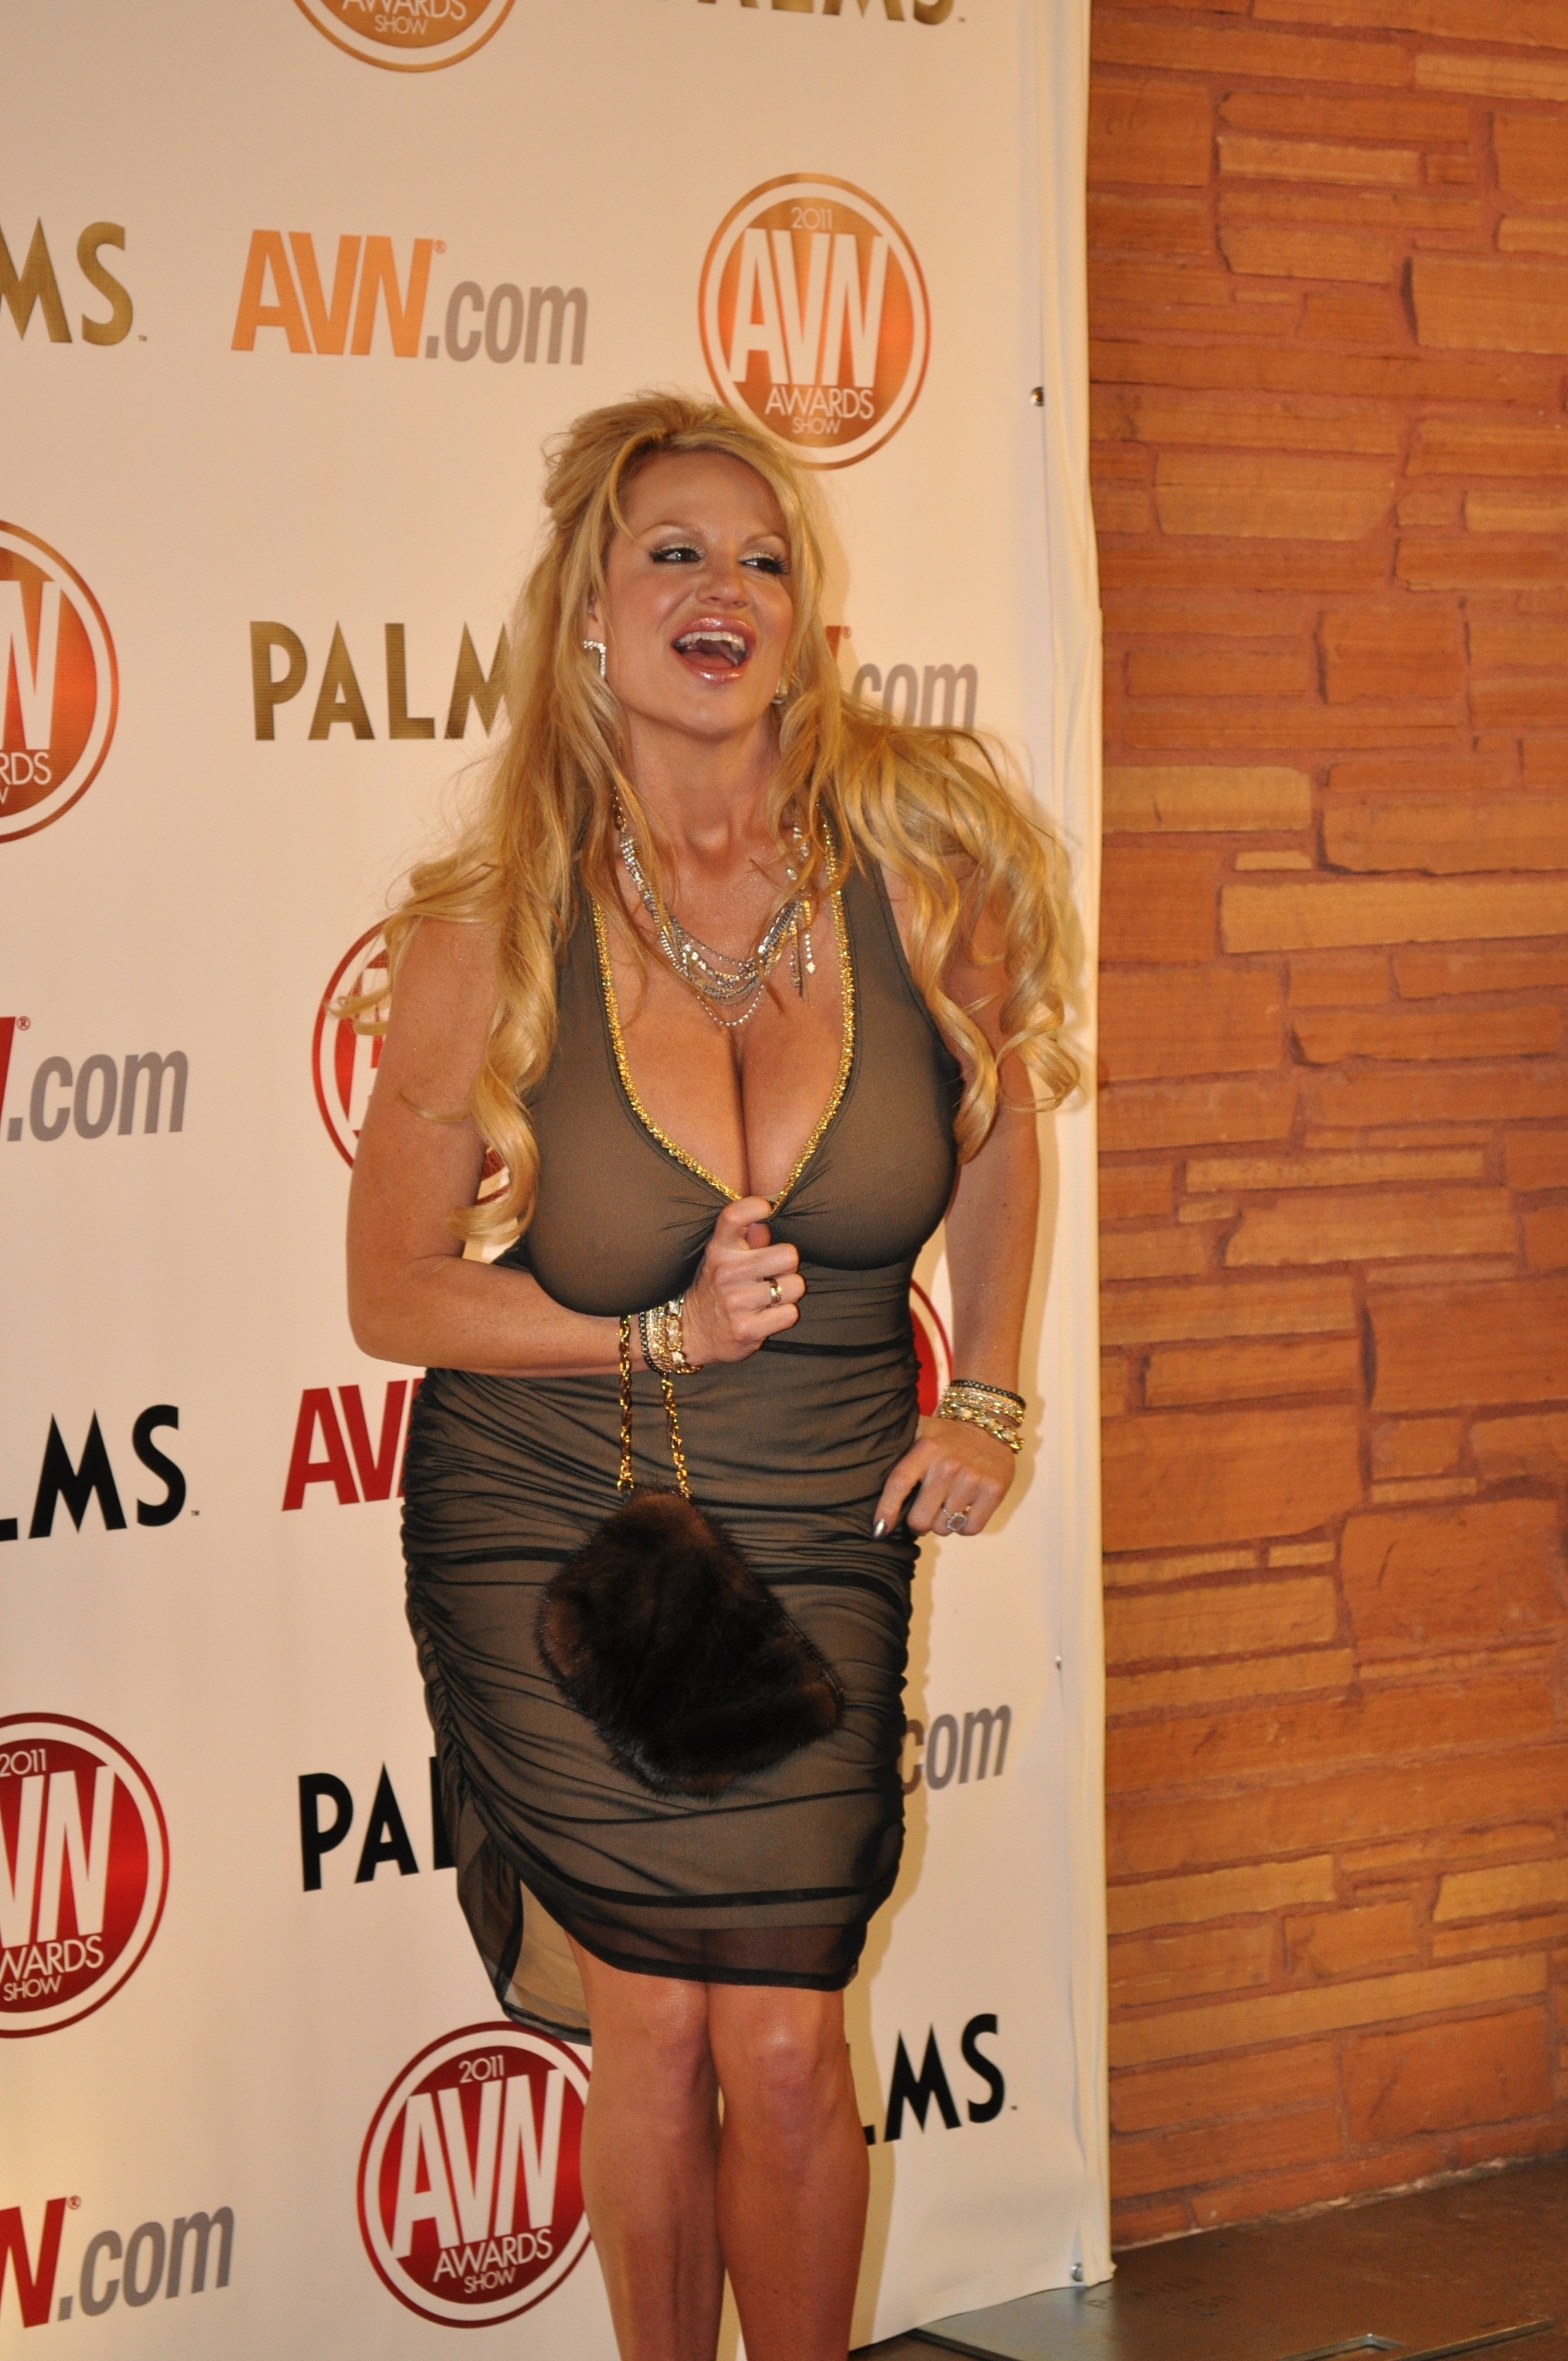 Pornostar Kelly Madison